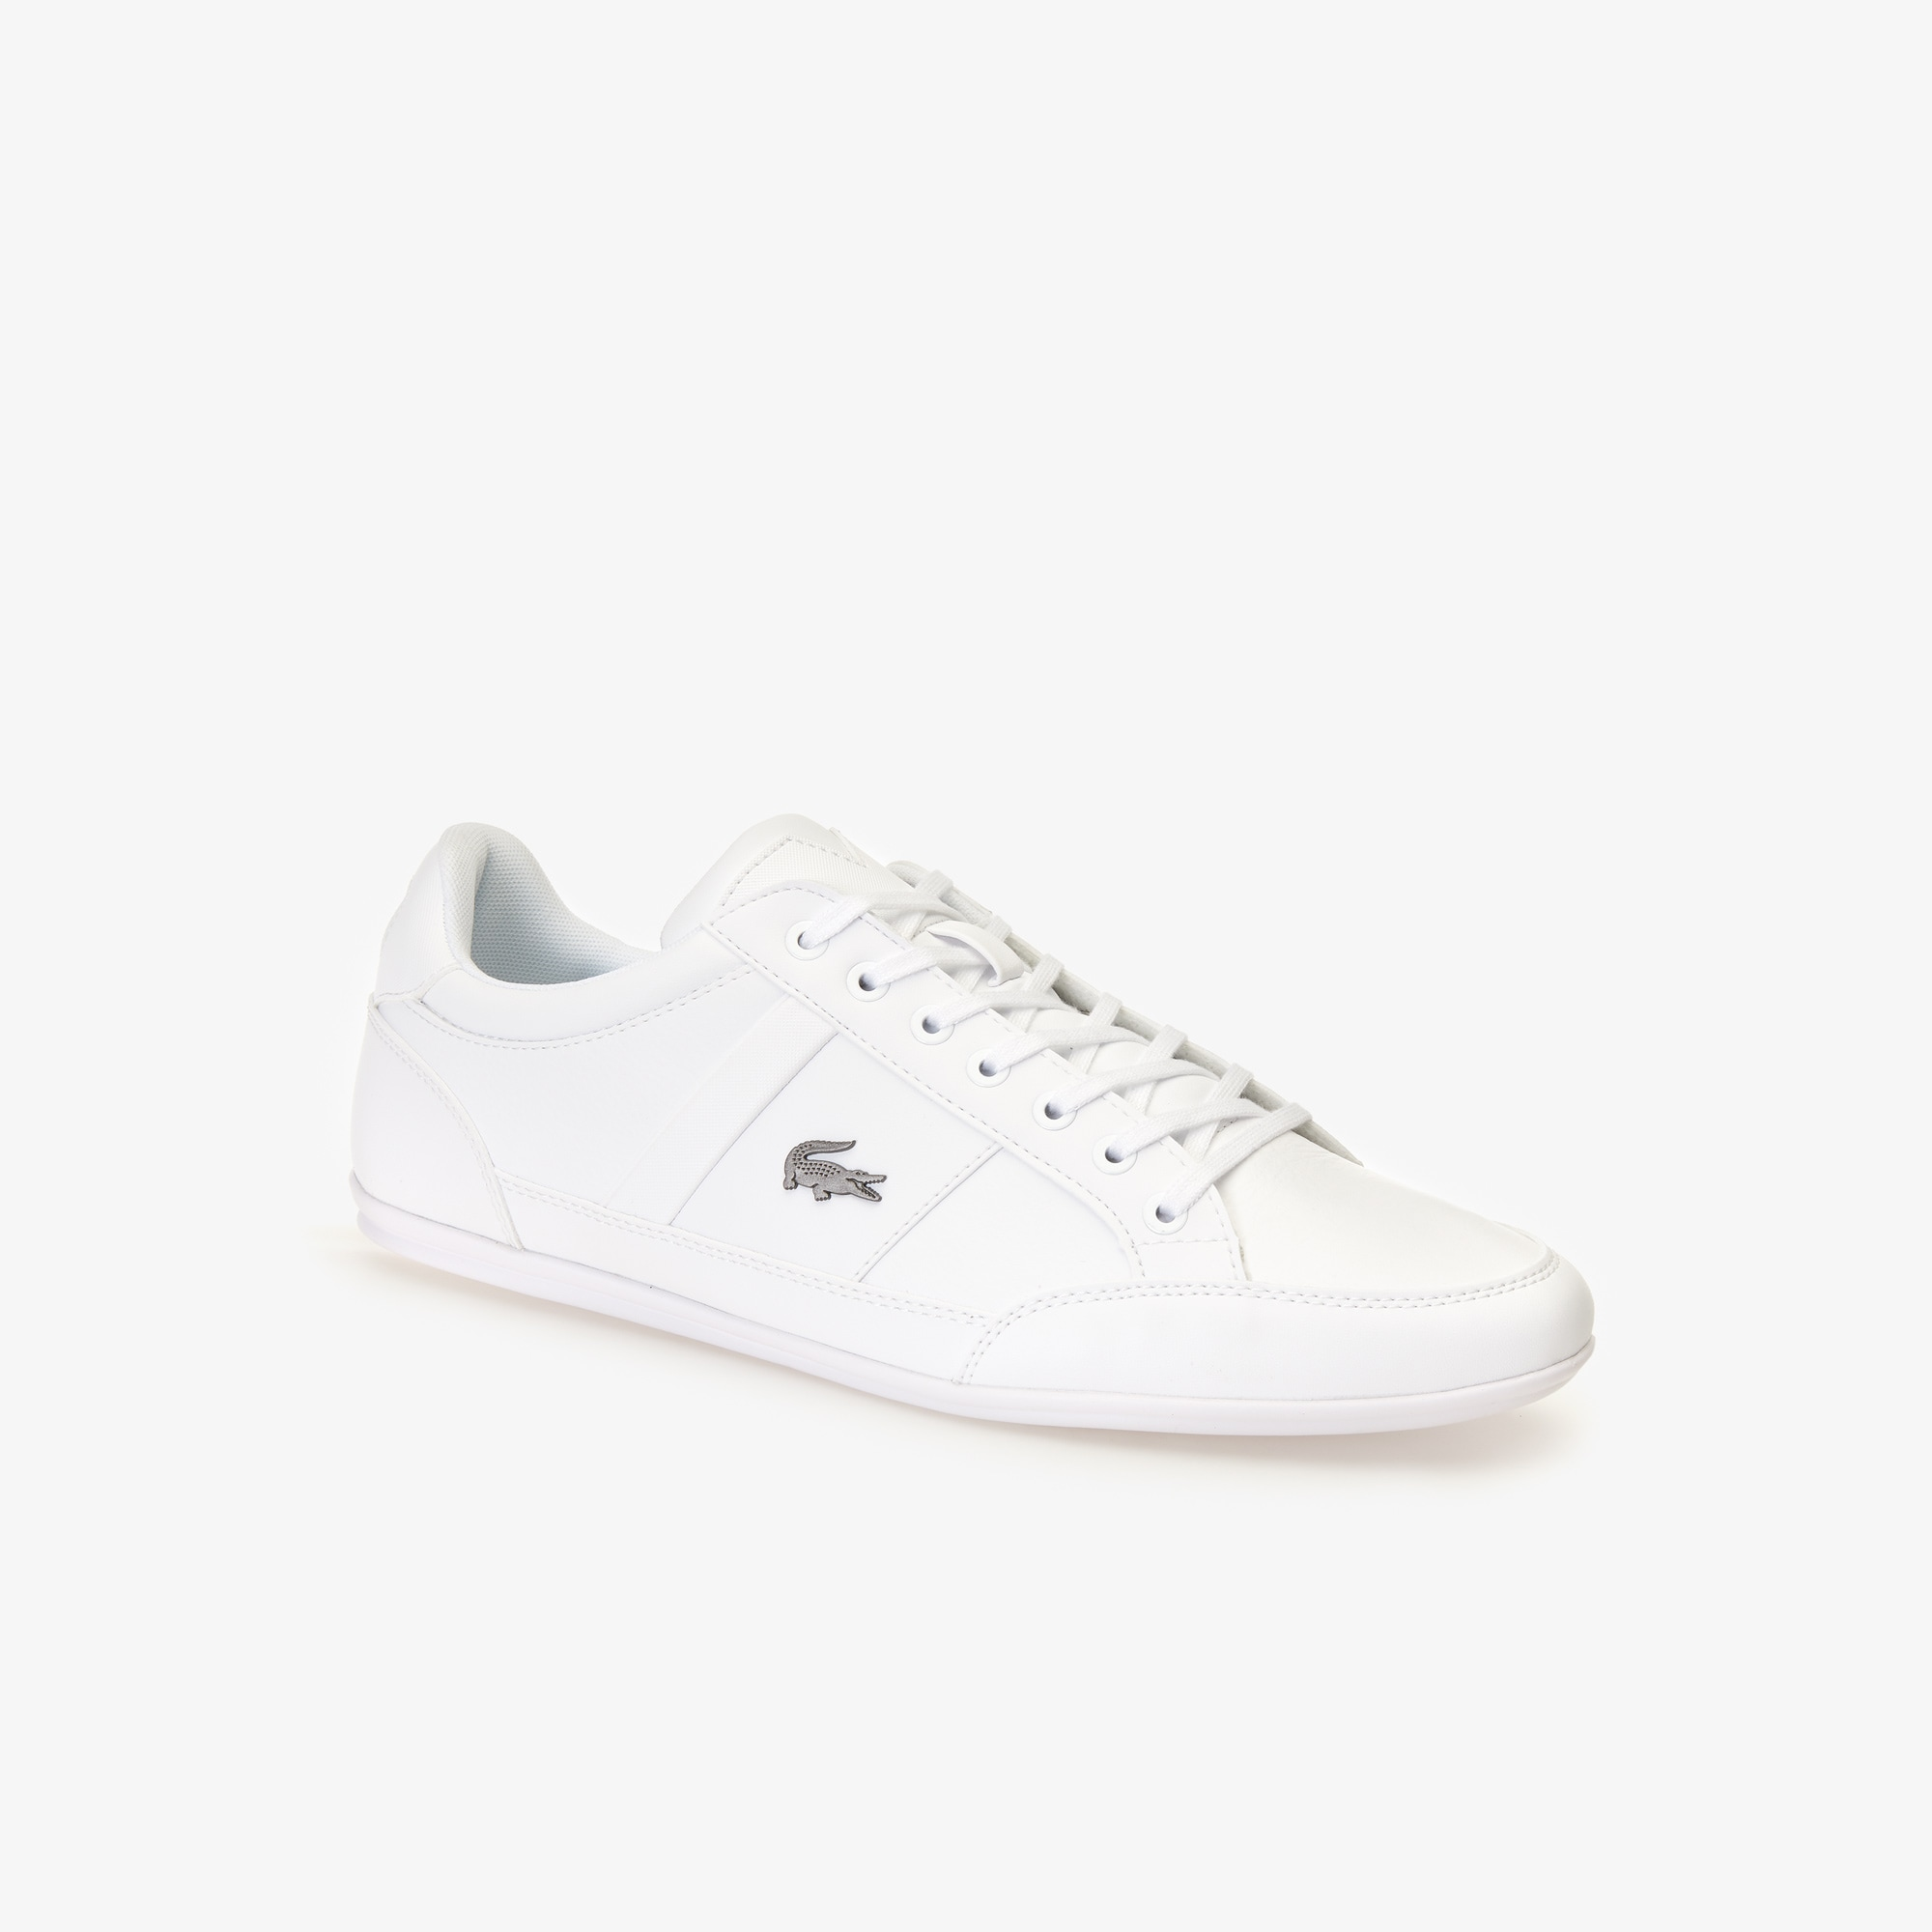 25169011bd Collection Chaussures Homme Collection Chaussures Lacoste Chaussures Homme  Homme Homme Lacoste Chaussures Collection Lacoste 4POwBqA